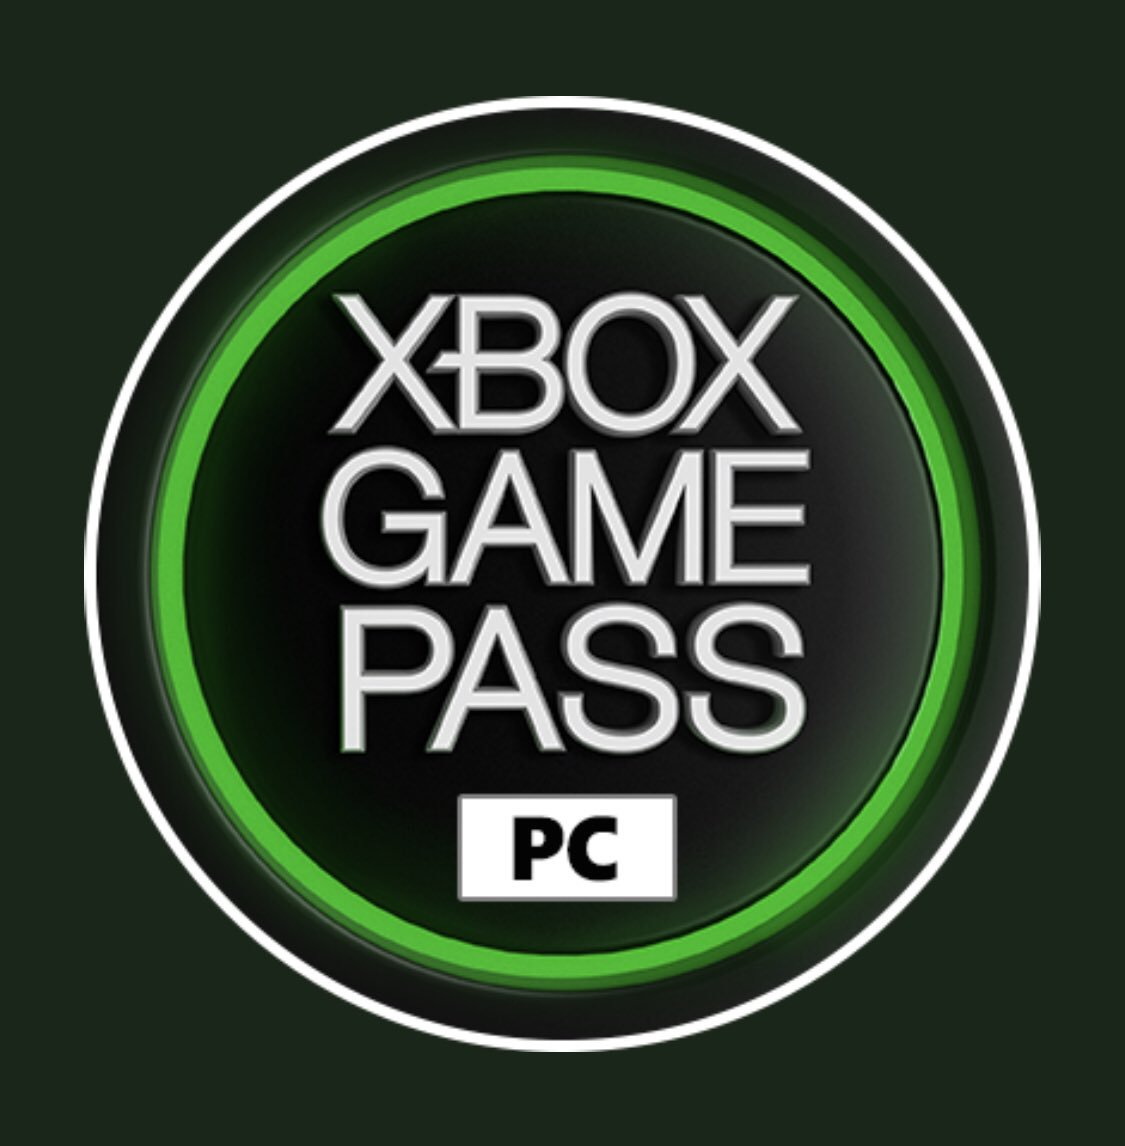 XBOX GAME PASS FOR PC 6 MONTHS CASHBACK FOR REVIEW